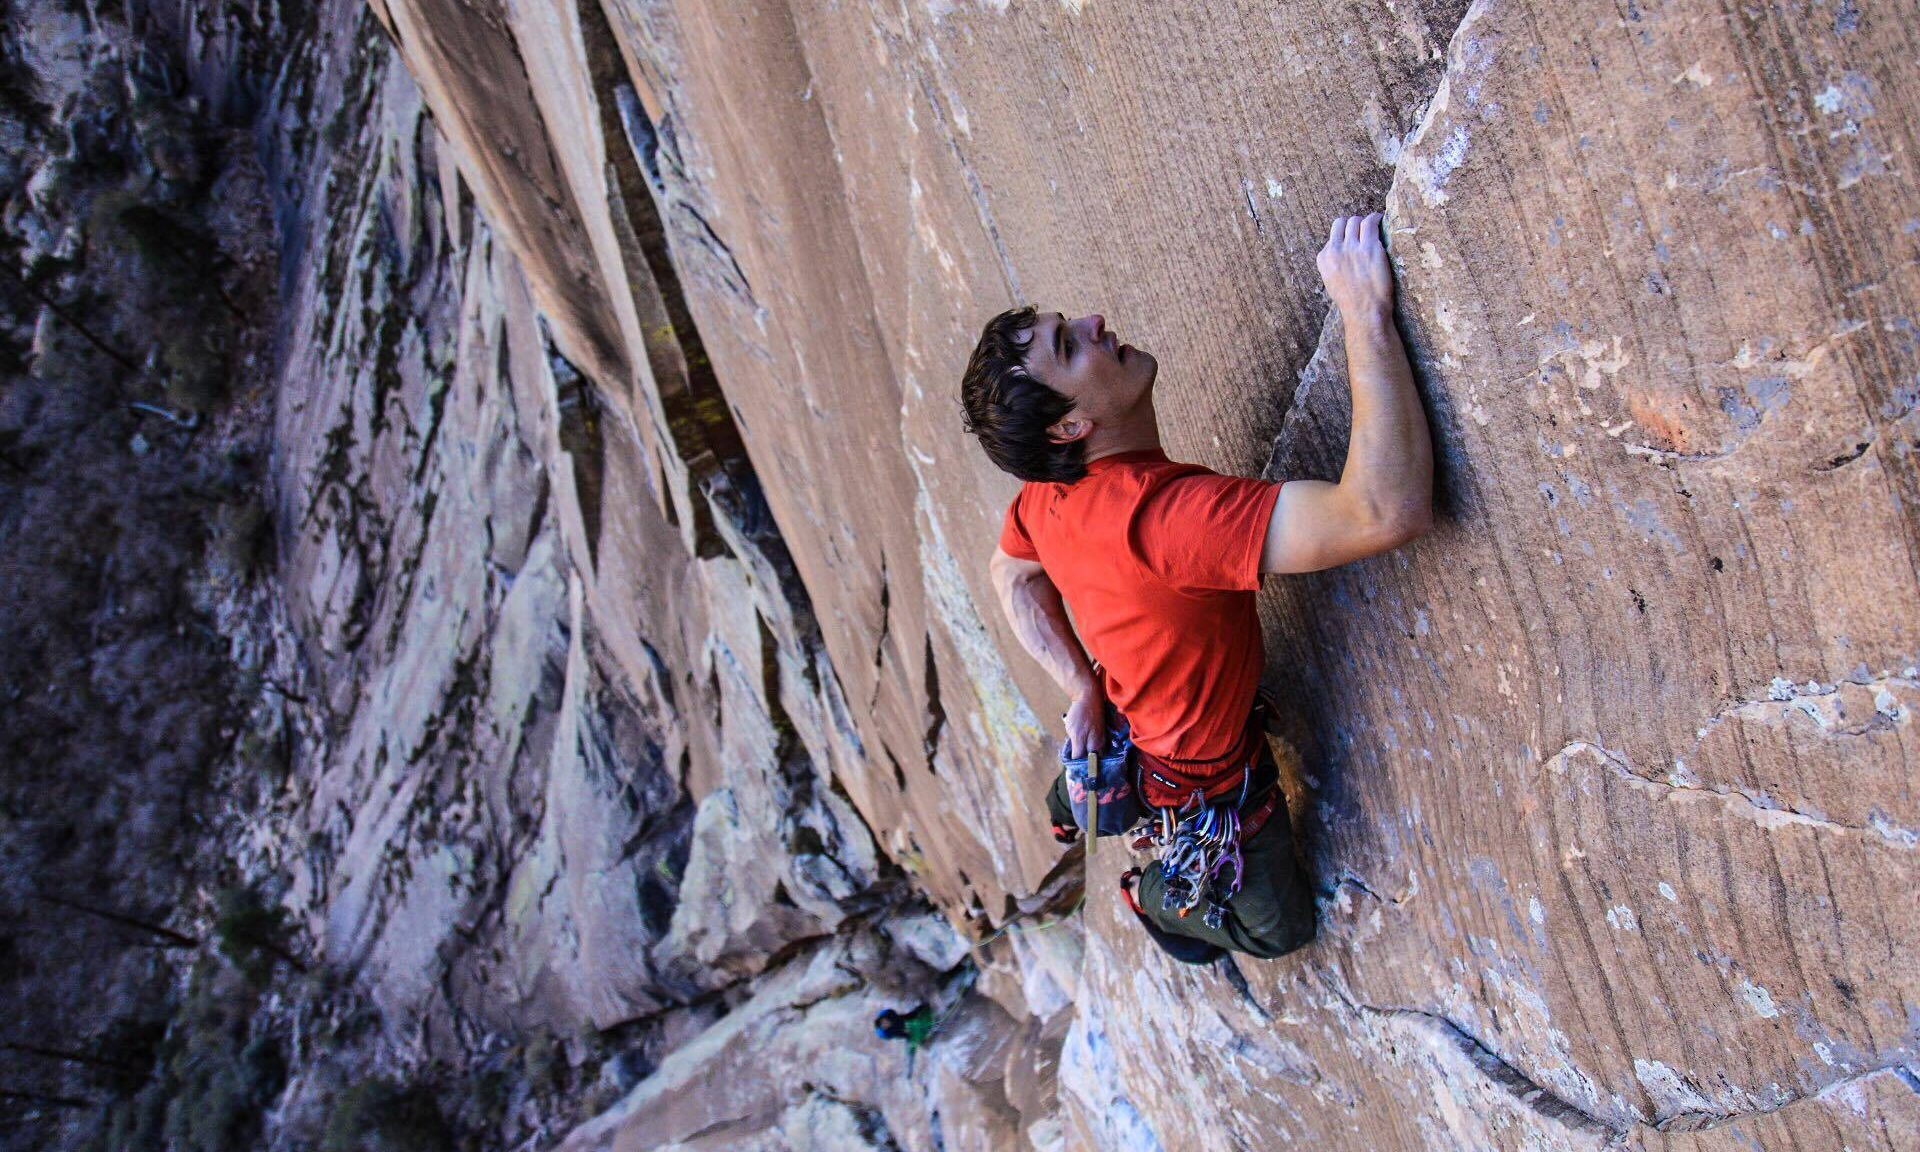 gobright continues remarkable 2017 with dreefee (5.13d) in red rock